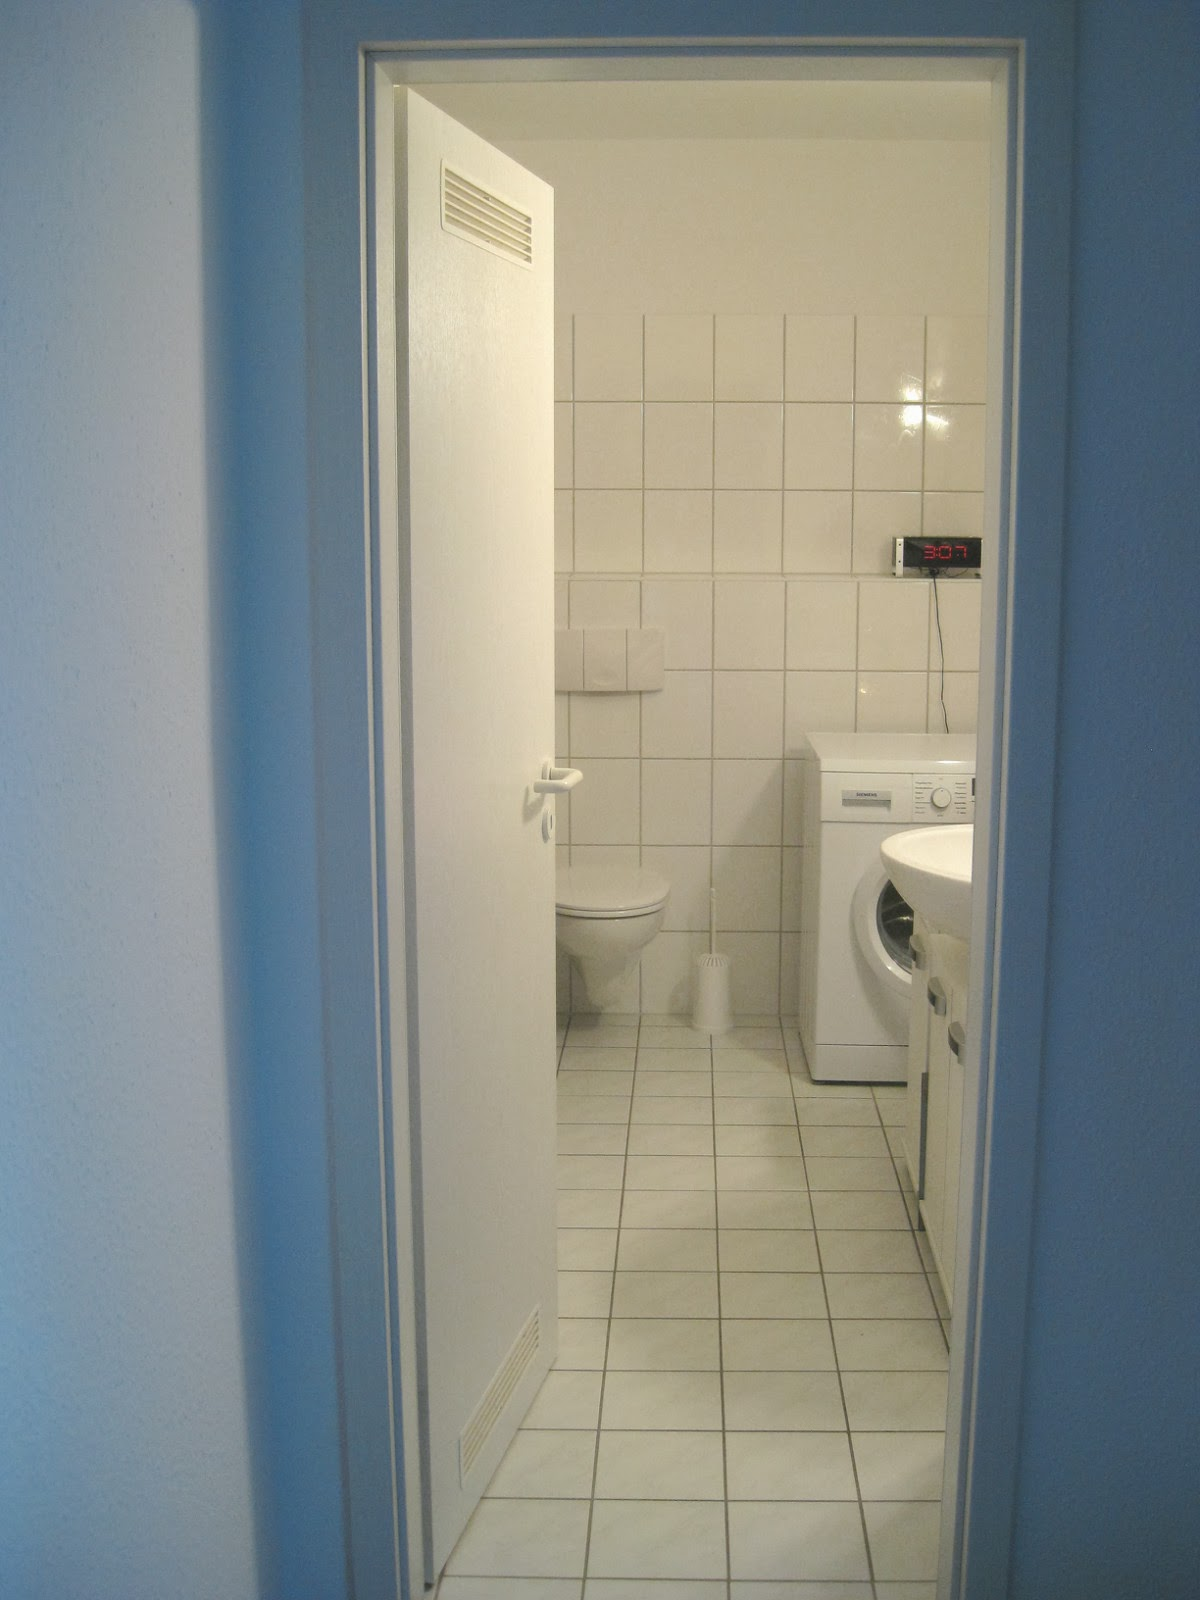 The good thing about German bathrooms  is that they tend to be larger than  their American counterparts  If I compare our bathroom now to the one I had  in my. Welcome to Germerica  German Apartment Tour  Bathroom